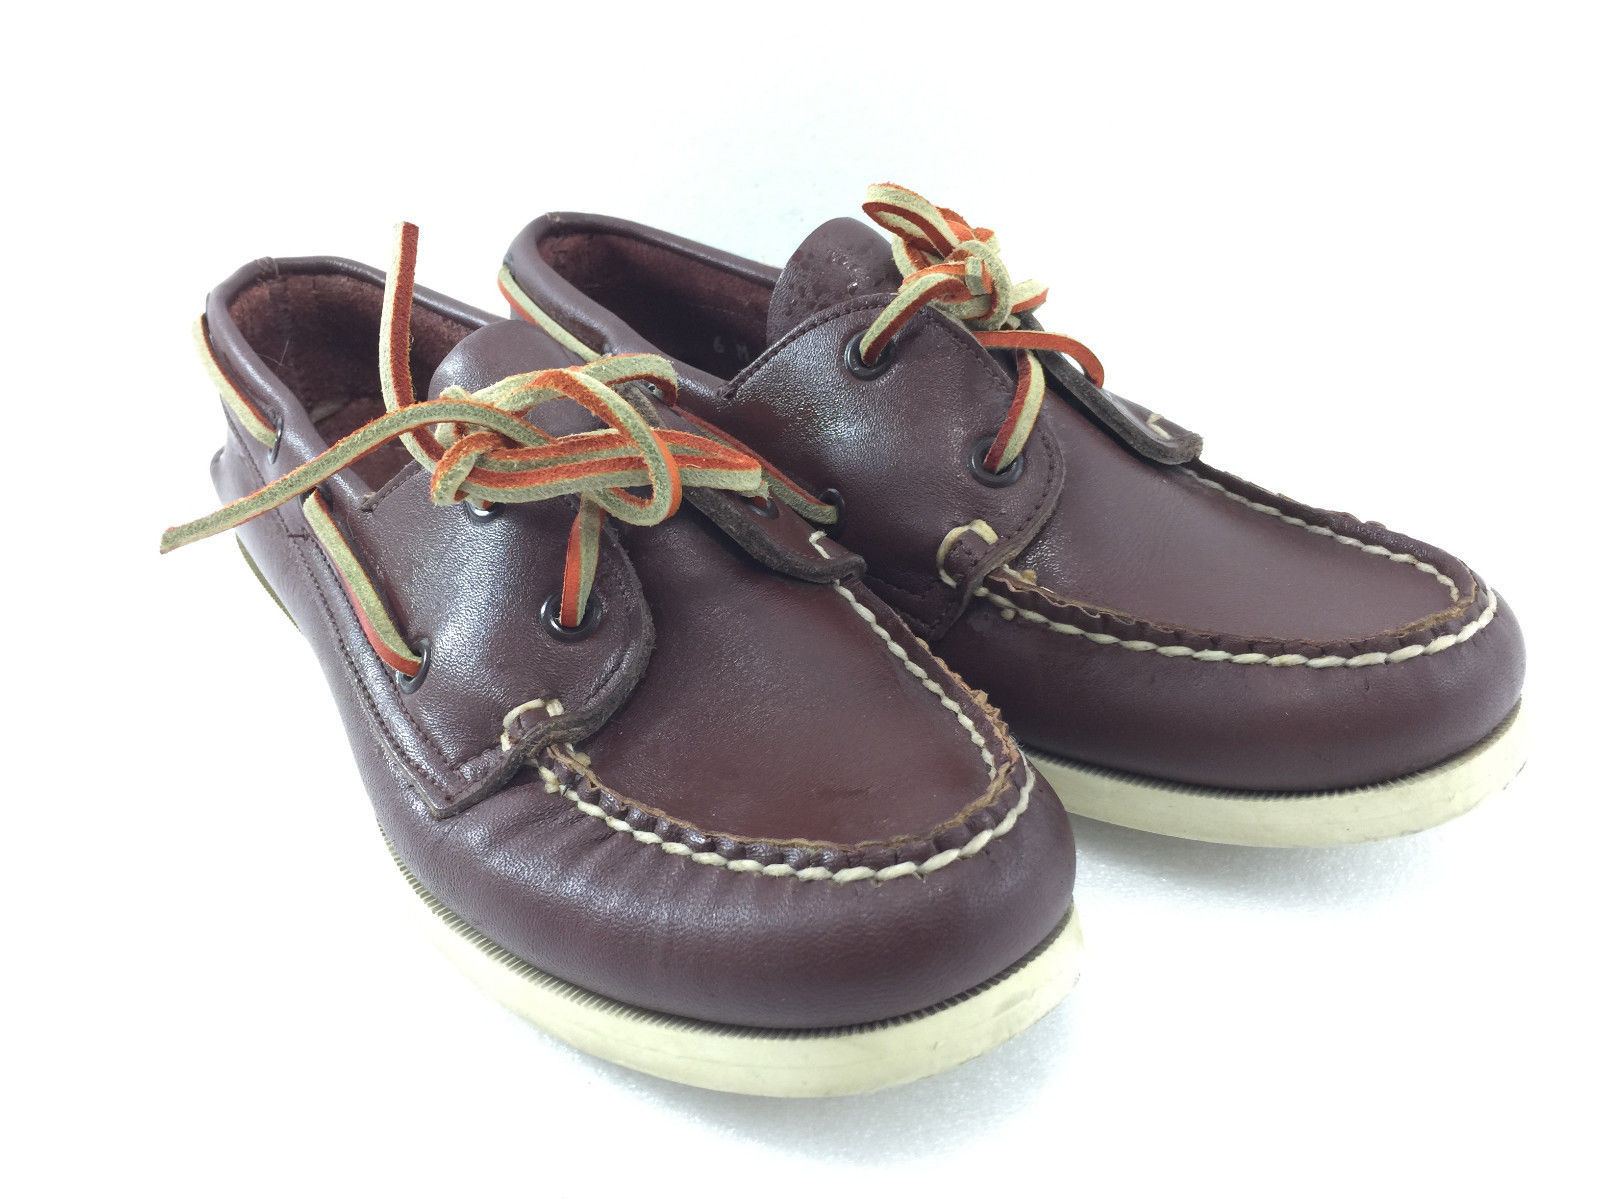 3010a0f9784e Sperry Top-Sider Womens 6 M Brown Leather and 50 similar items. S l1600